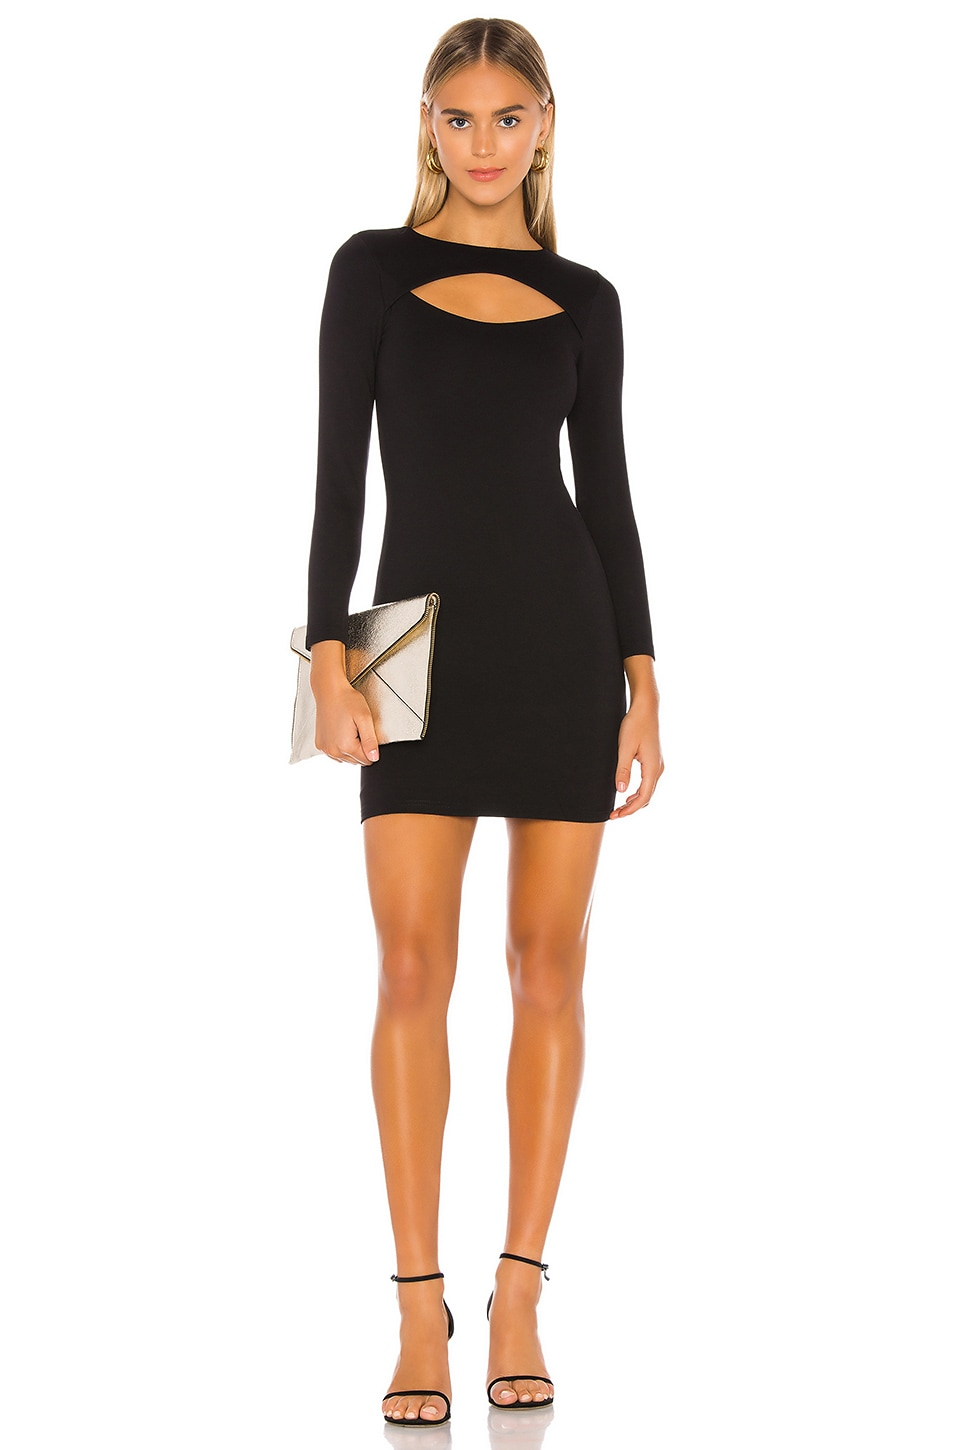 Lovers + Friends Scarlette Mini Dress in Black